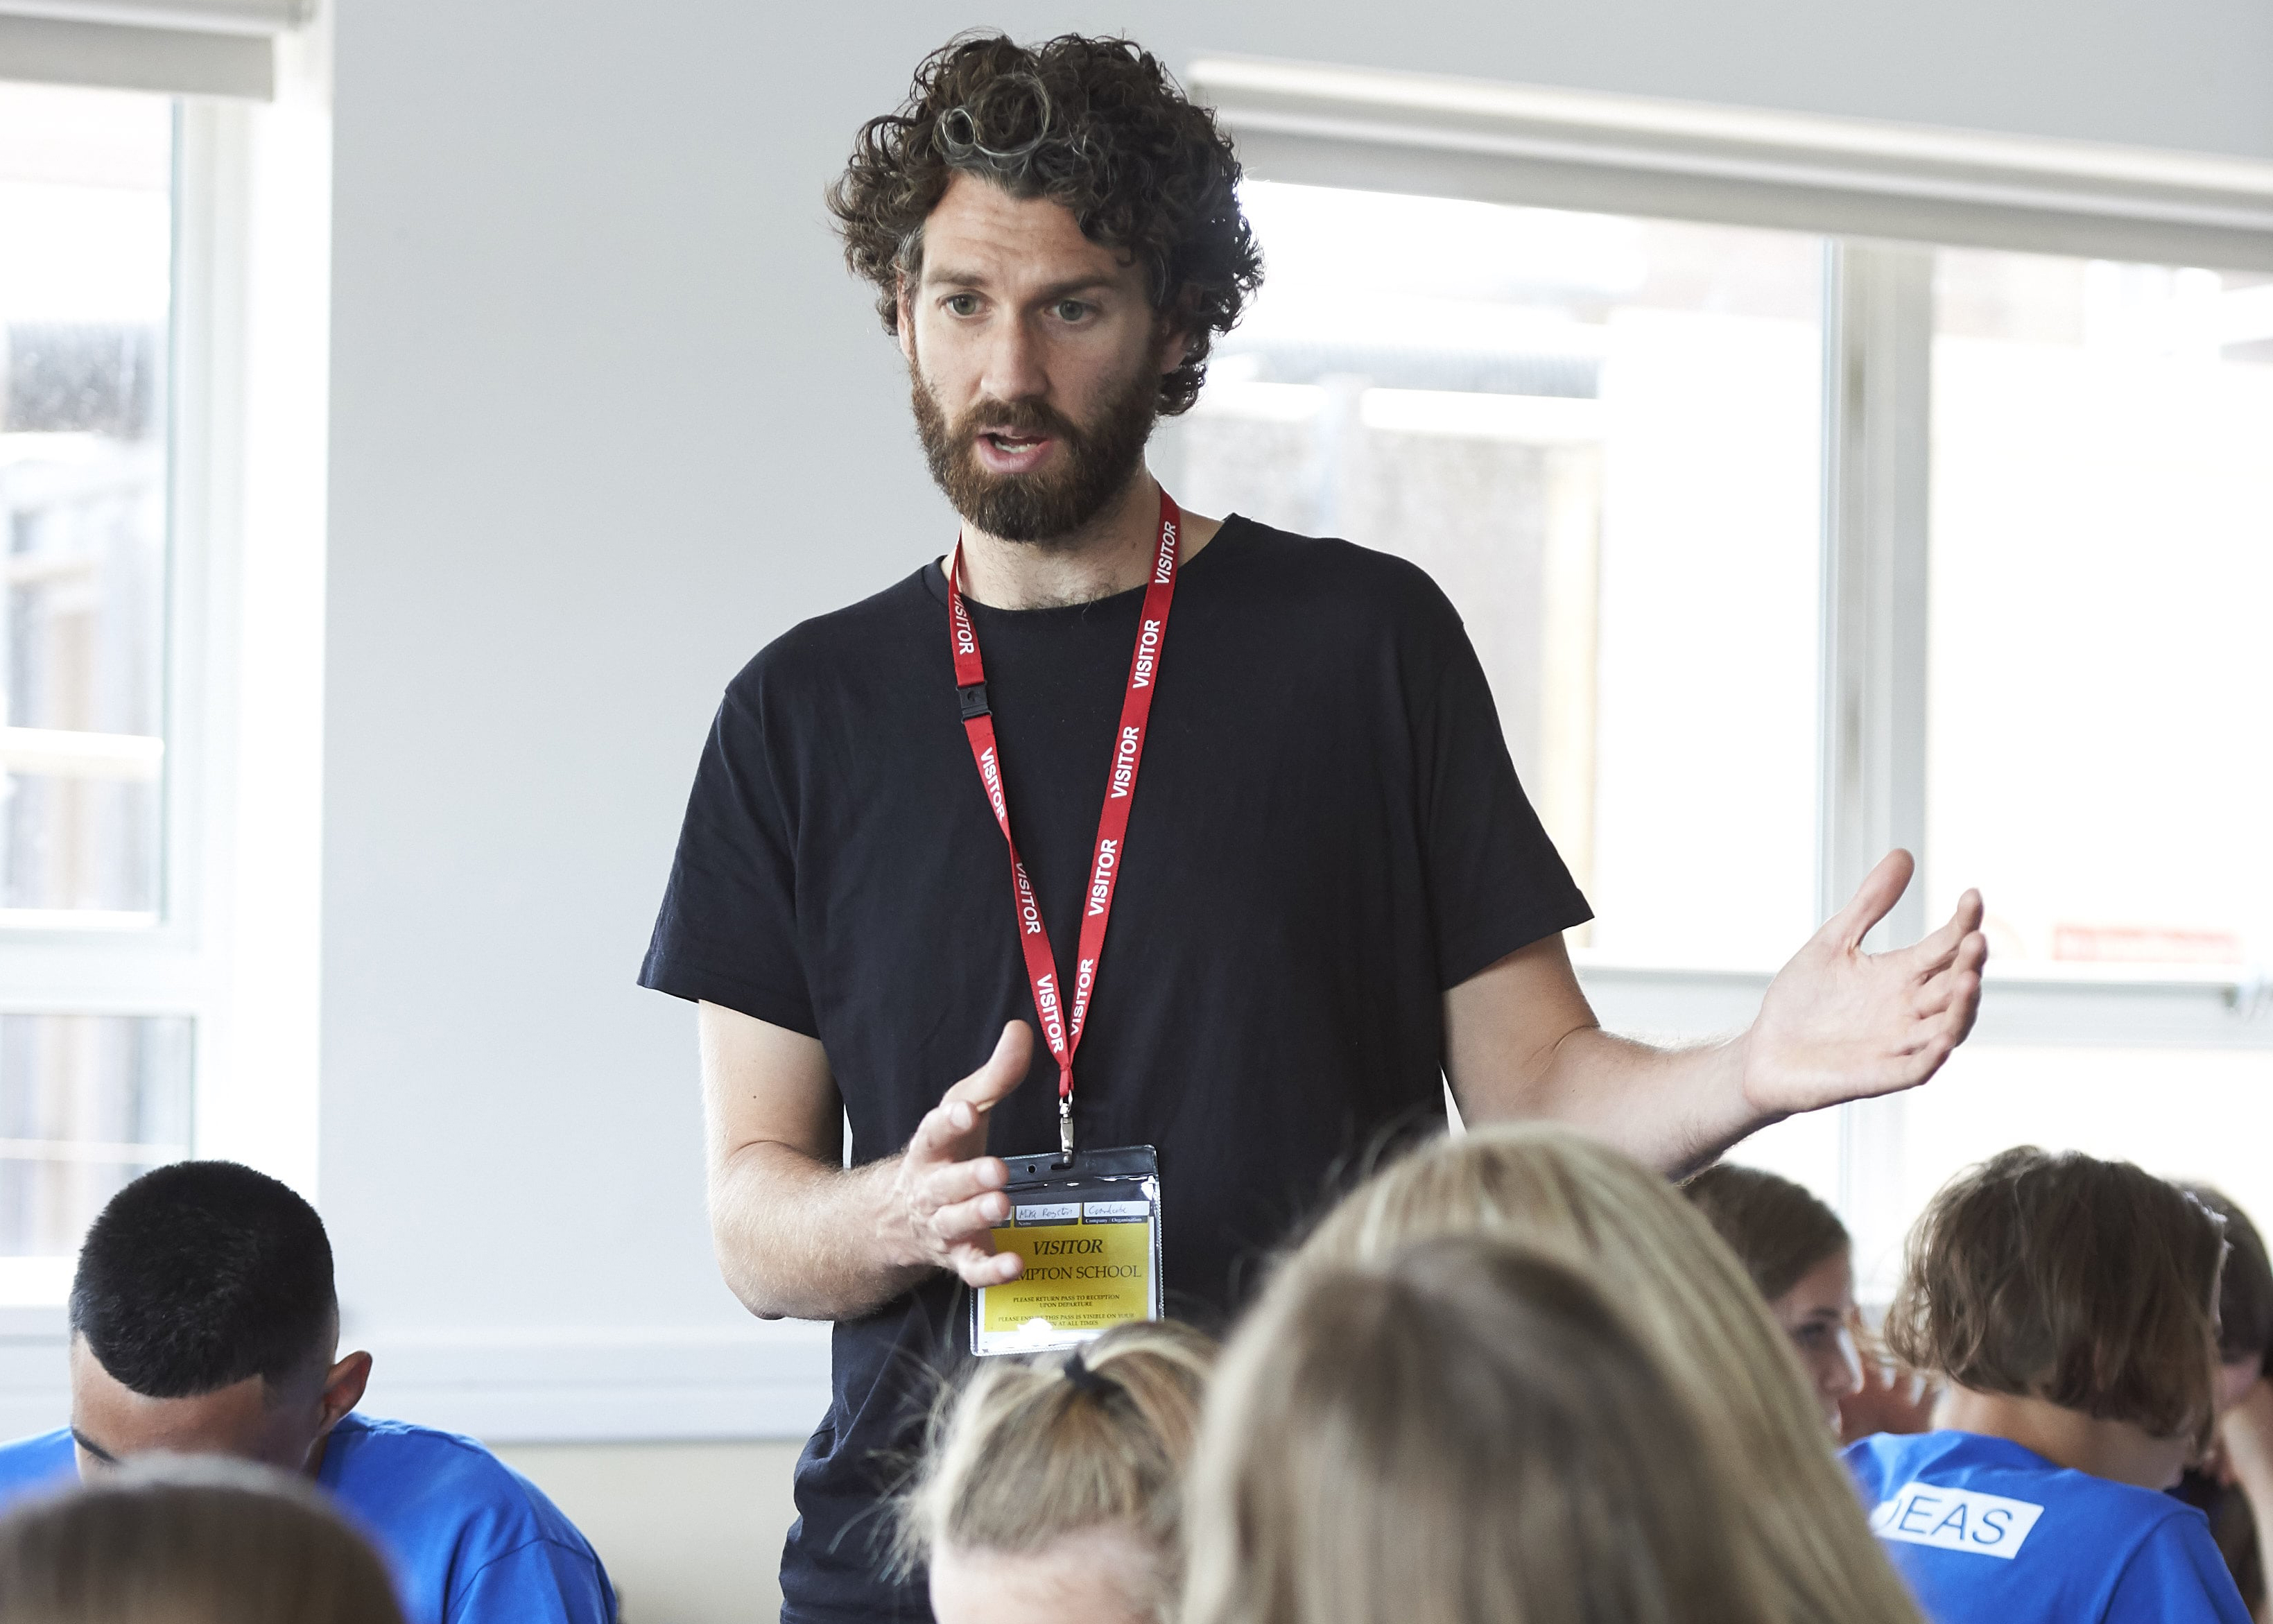 Mike Royston from Crowdcube talks to a group of students